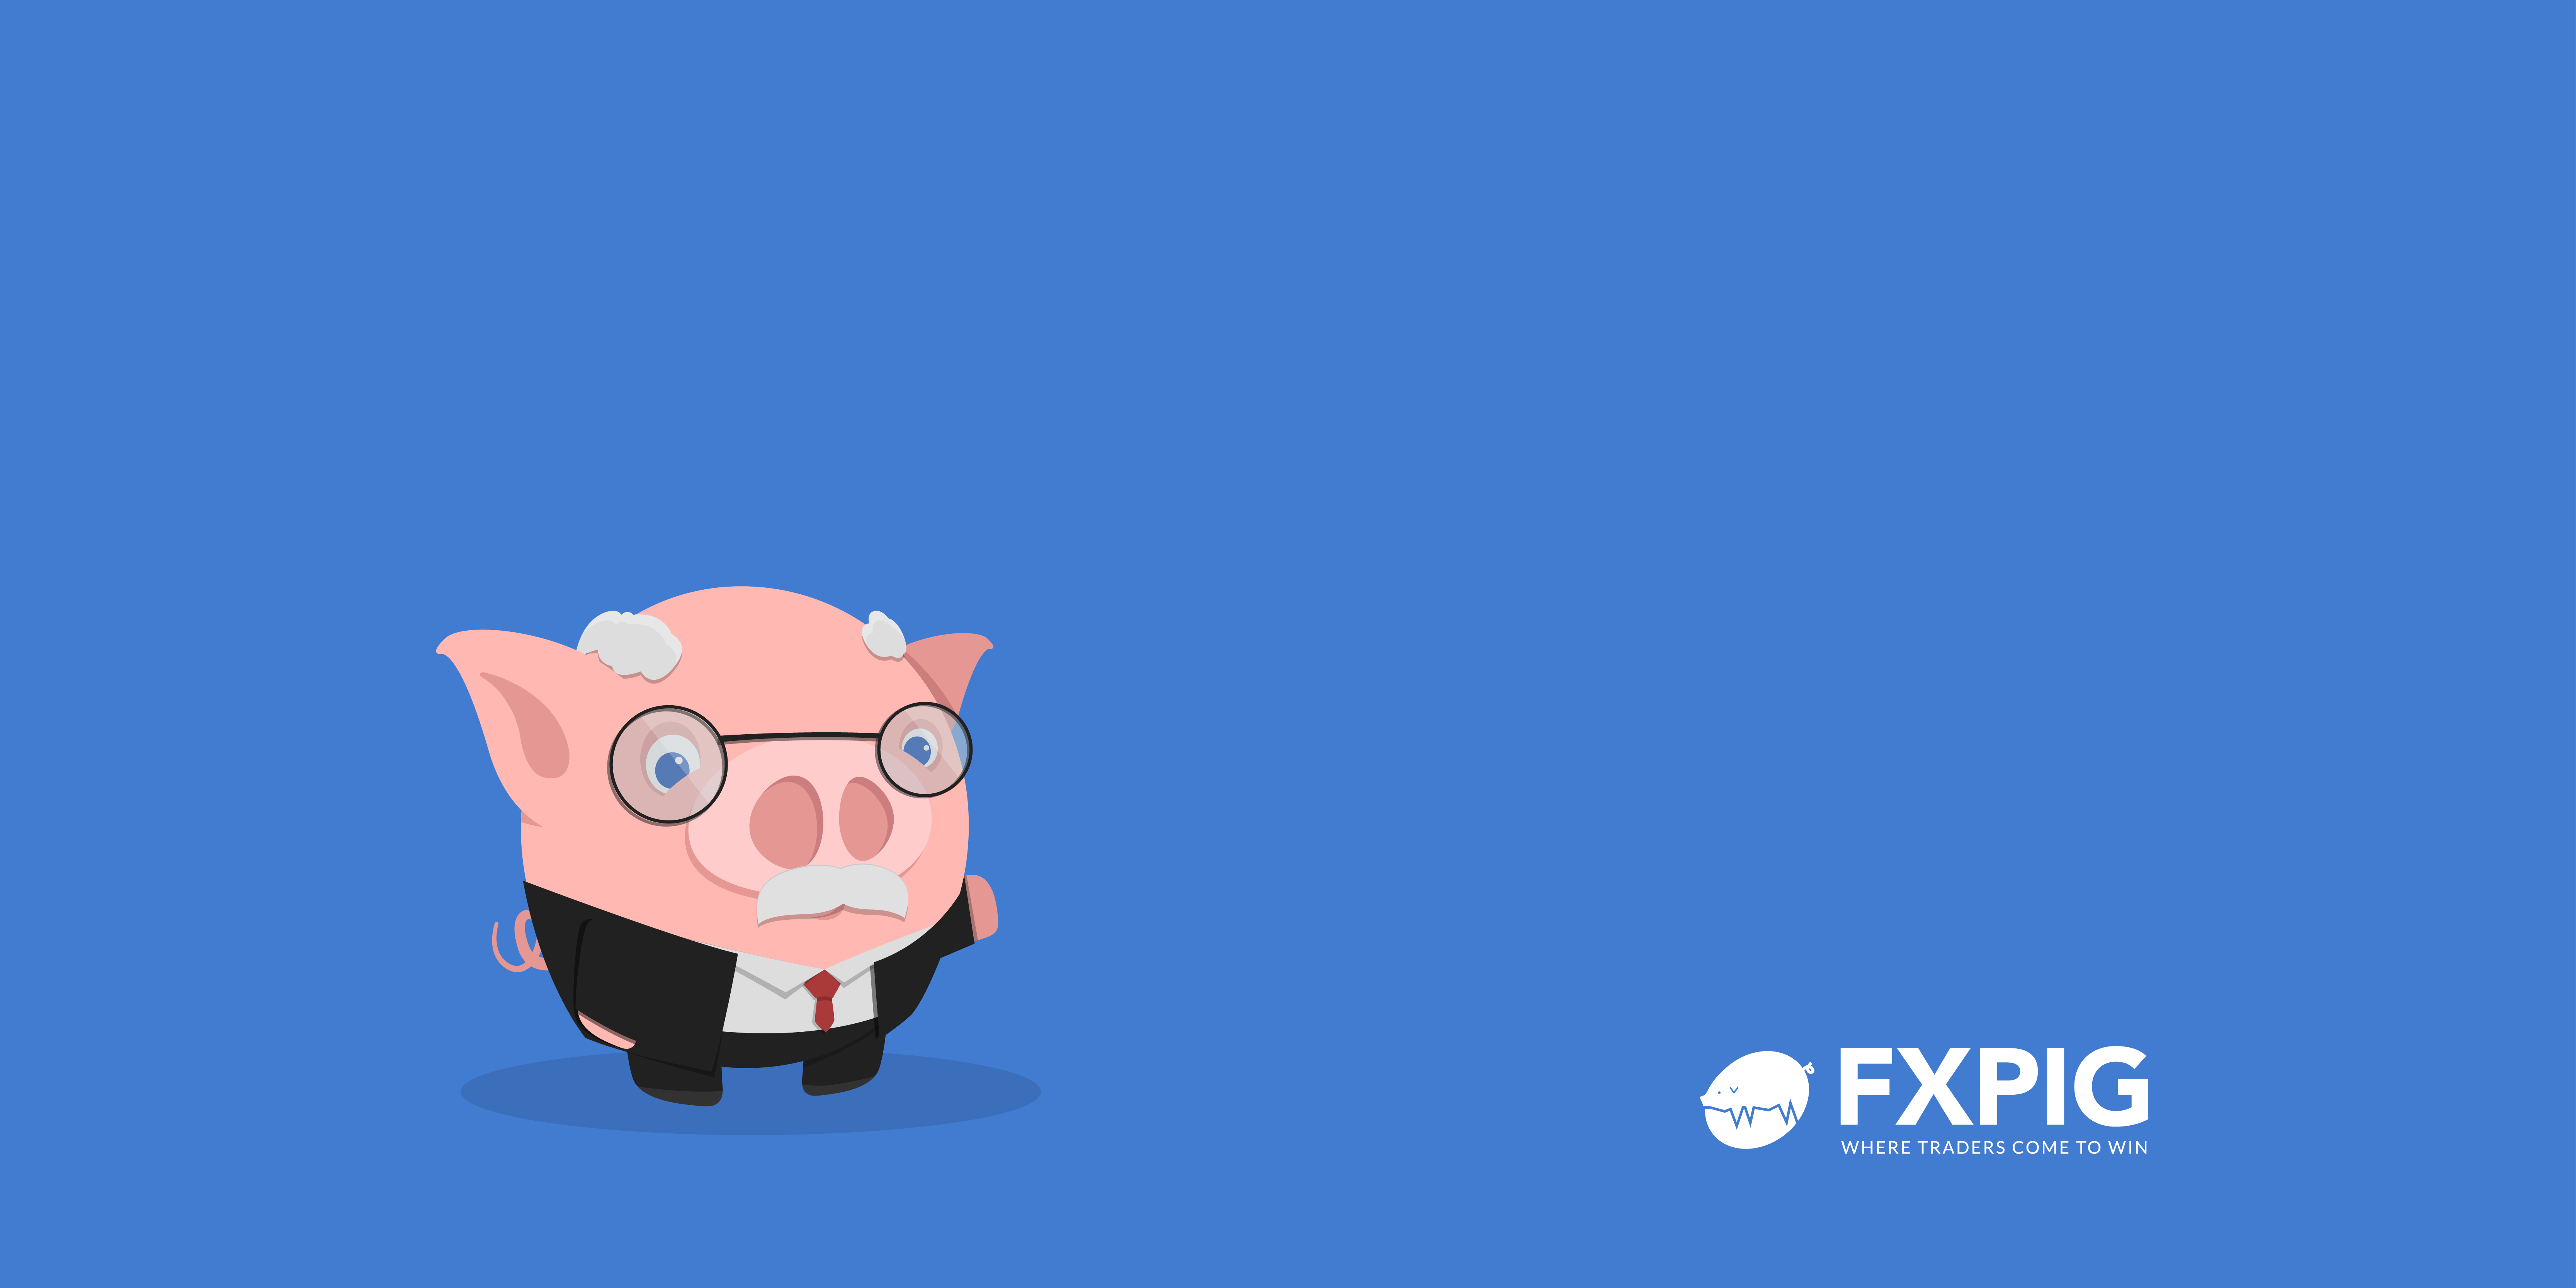 Forex_Trading_Fx_Trader_FXPIG_Forex-Trading-wisdom_Forex-Trading-Quotes-Move-the-Market